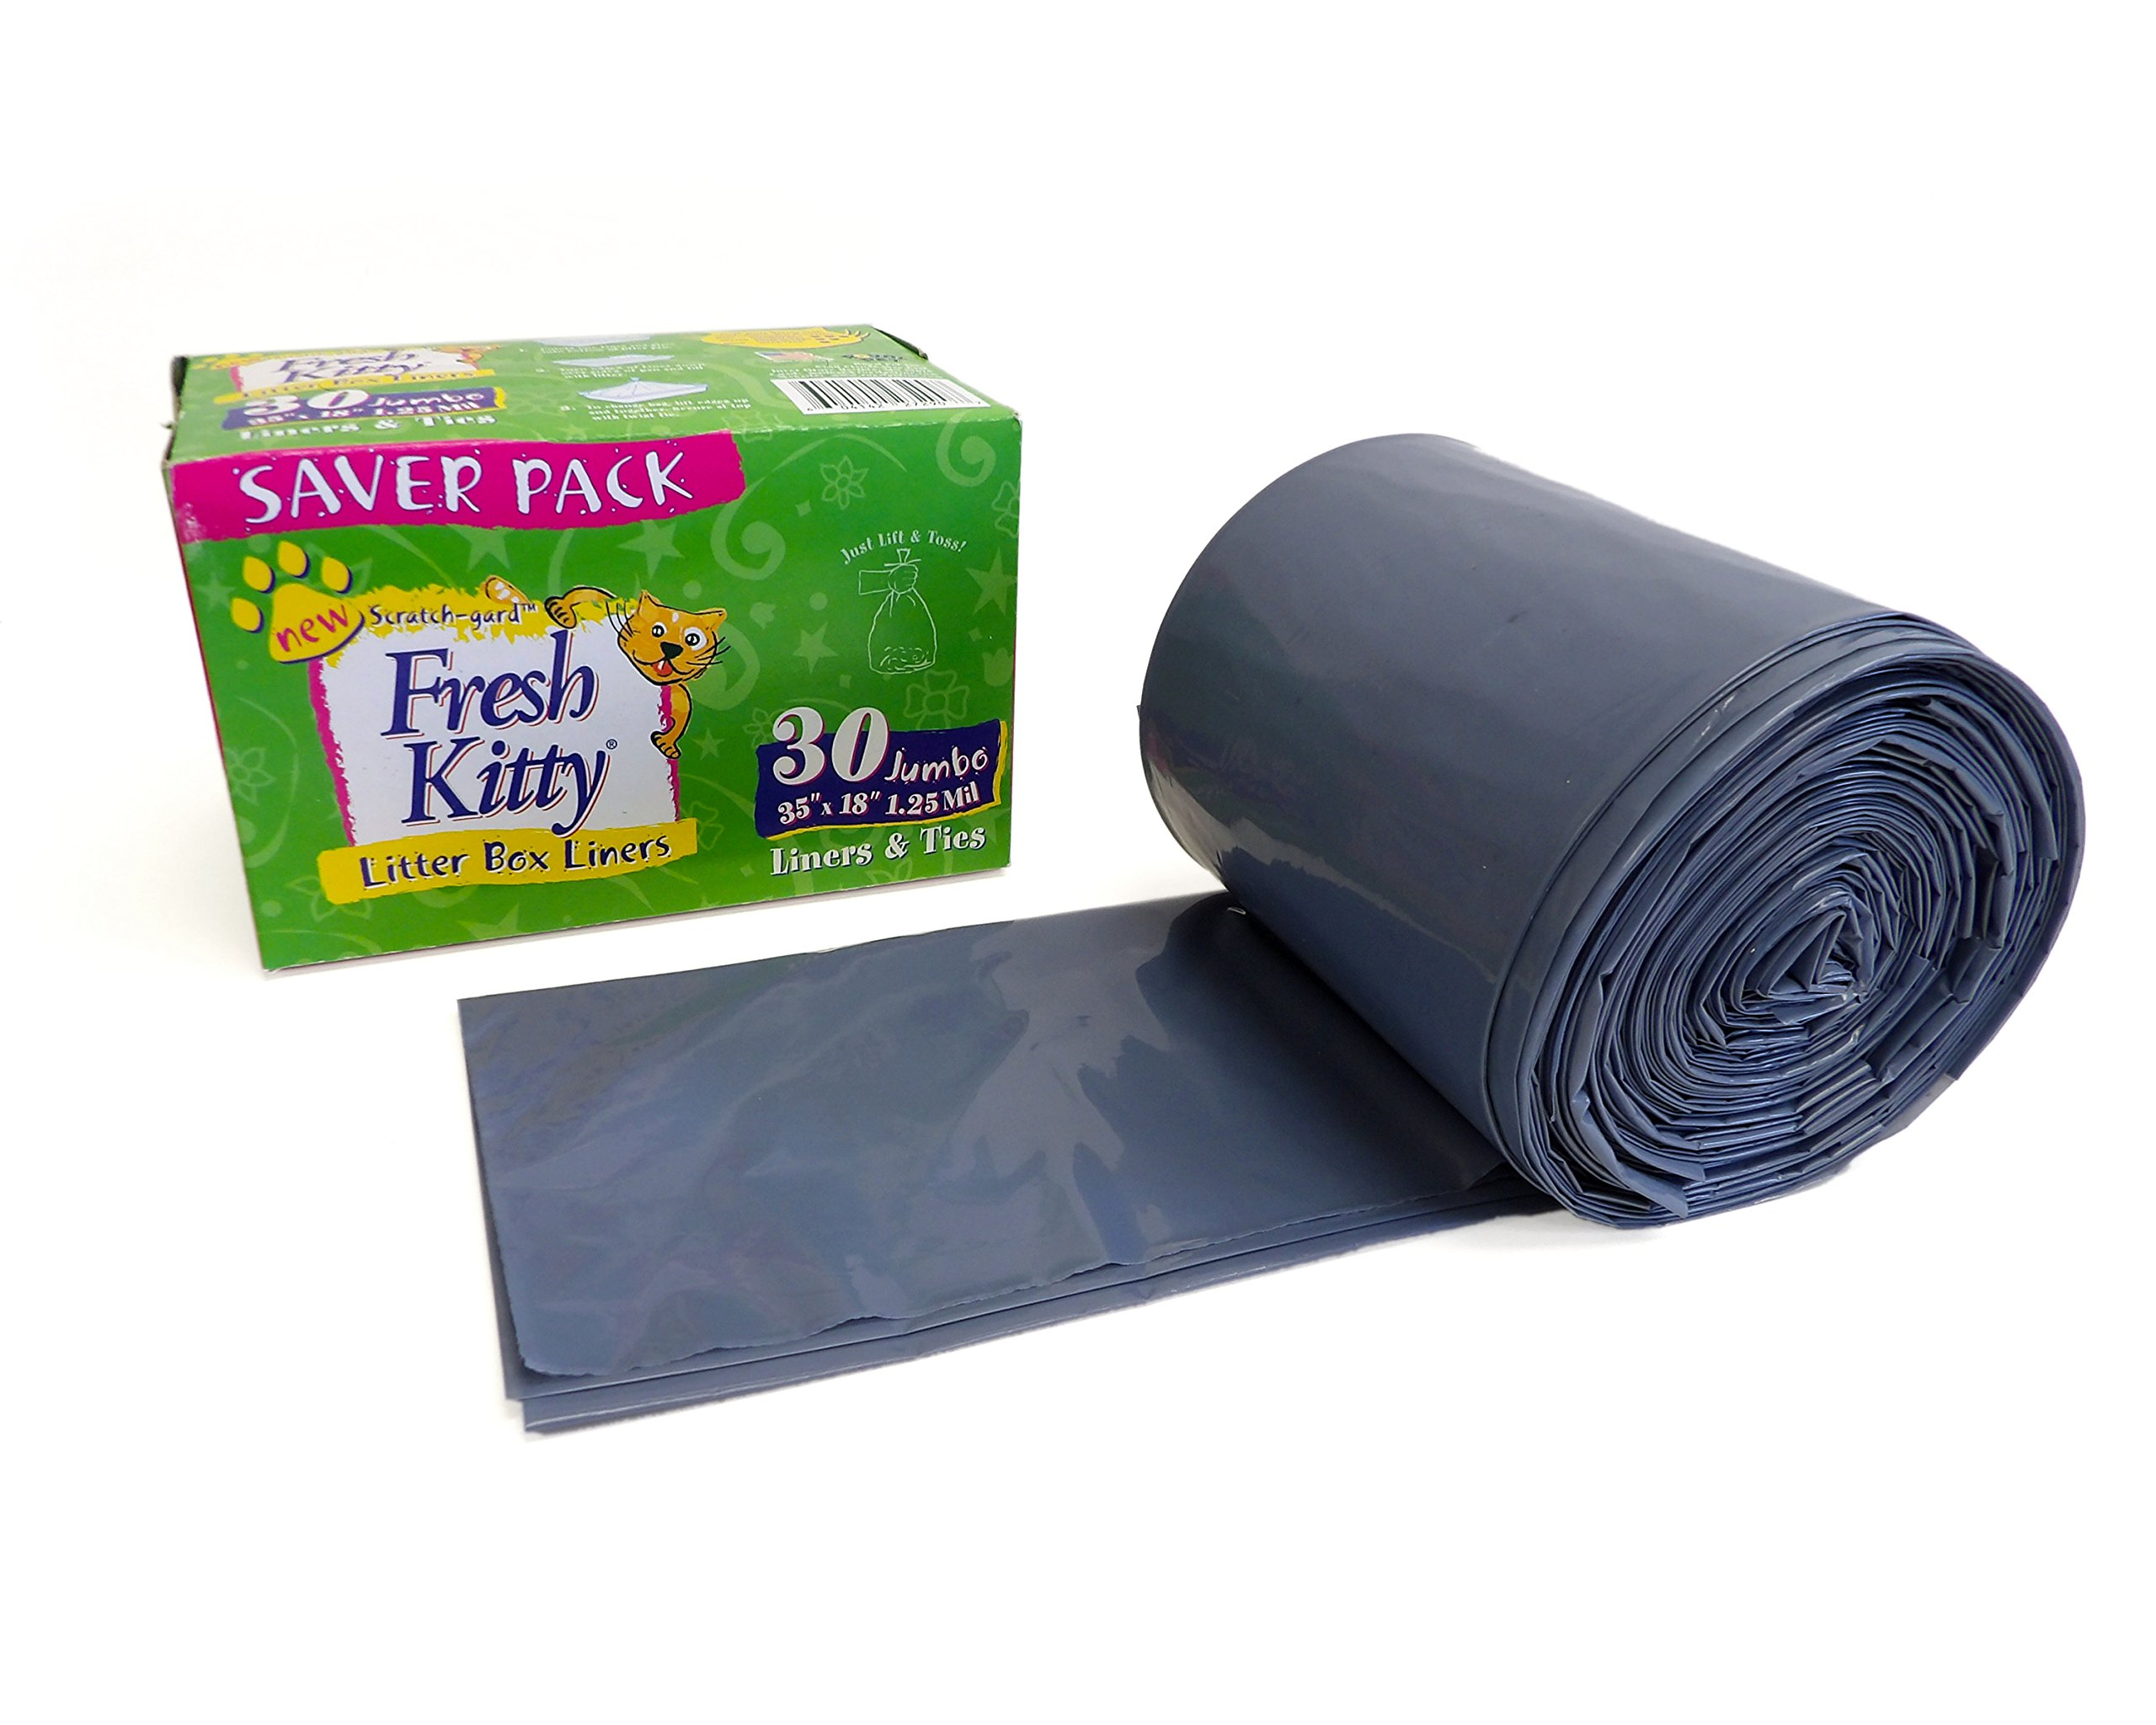 Fresh Kitty Litter Box Liners, Jumbo with Ties (Pack of 30)